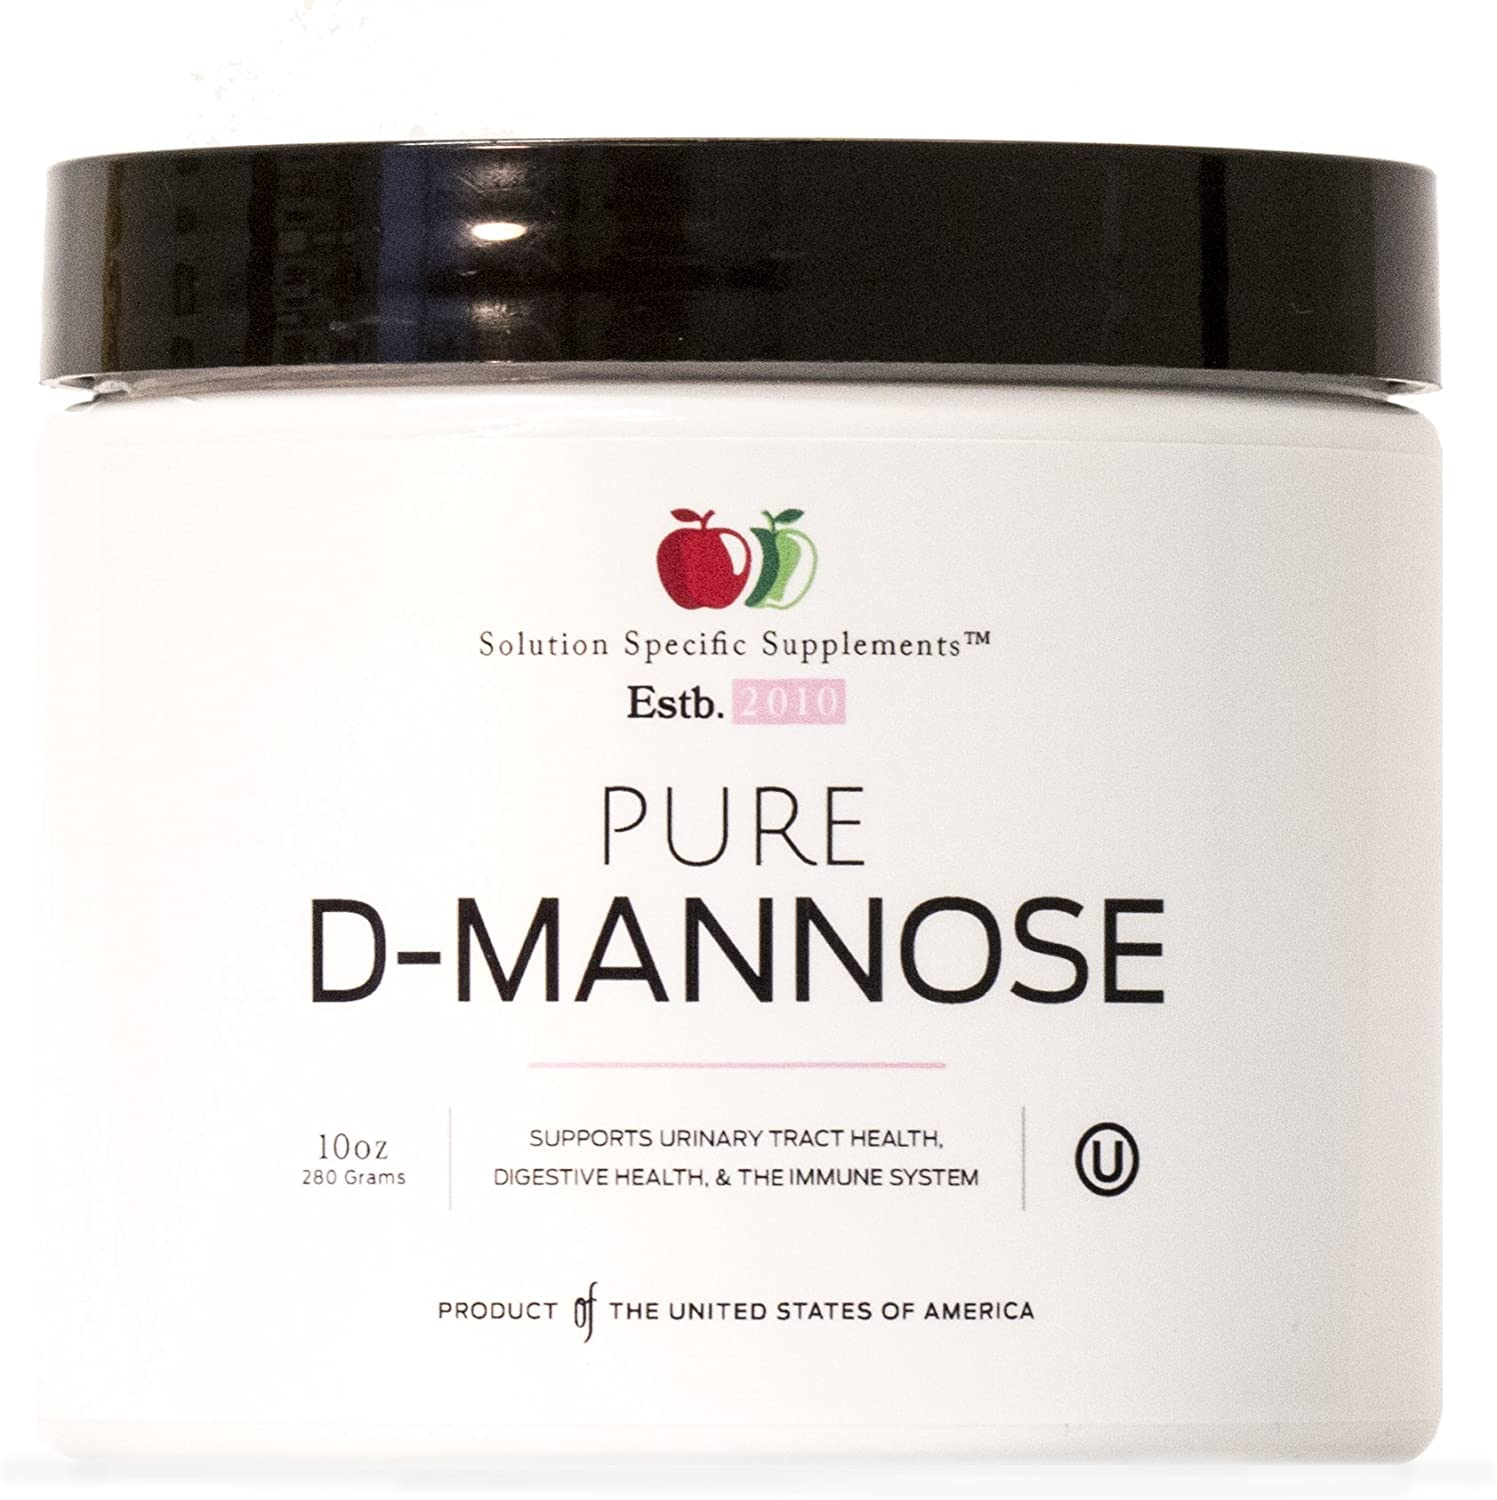 Pure D-Mannose Powder Supplement - Bulk D-Mannose 10oz (283 g) 120 Servings for UTI, Bladder, Urinary Tract Health: Health & Personal Care